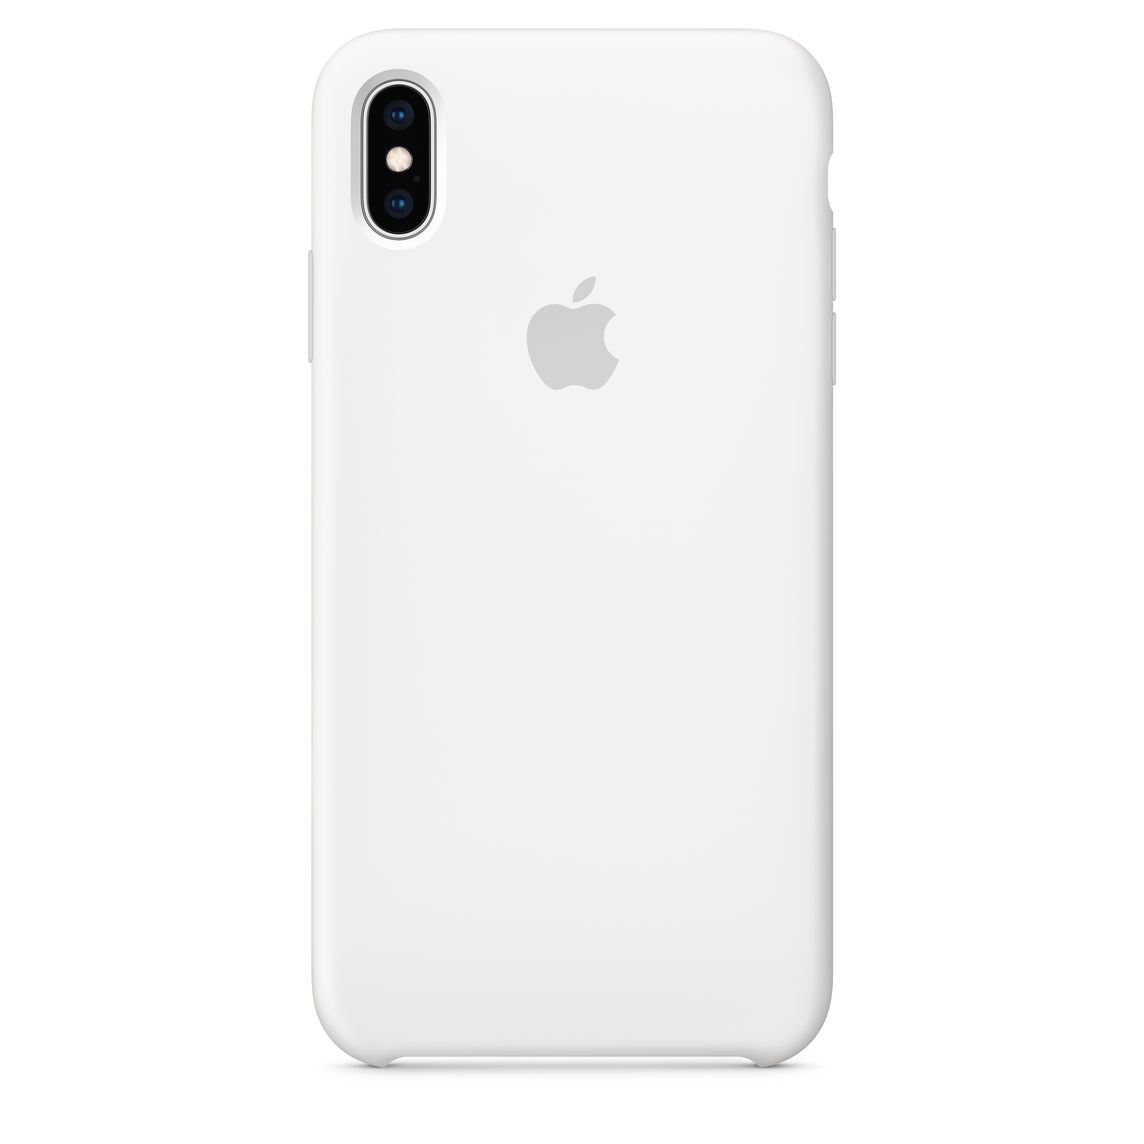 coque iphone xs max pour carte bleue or